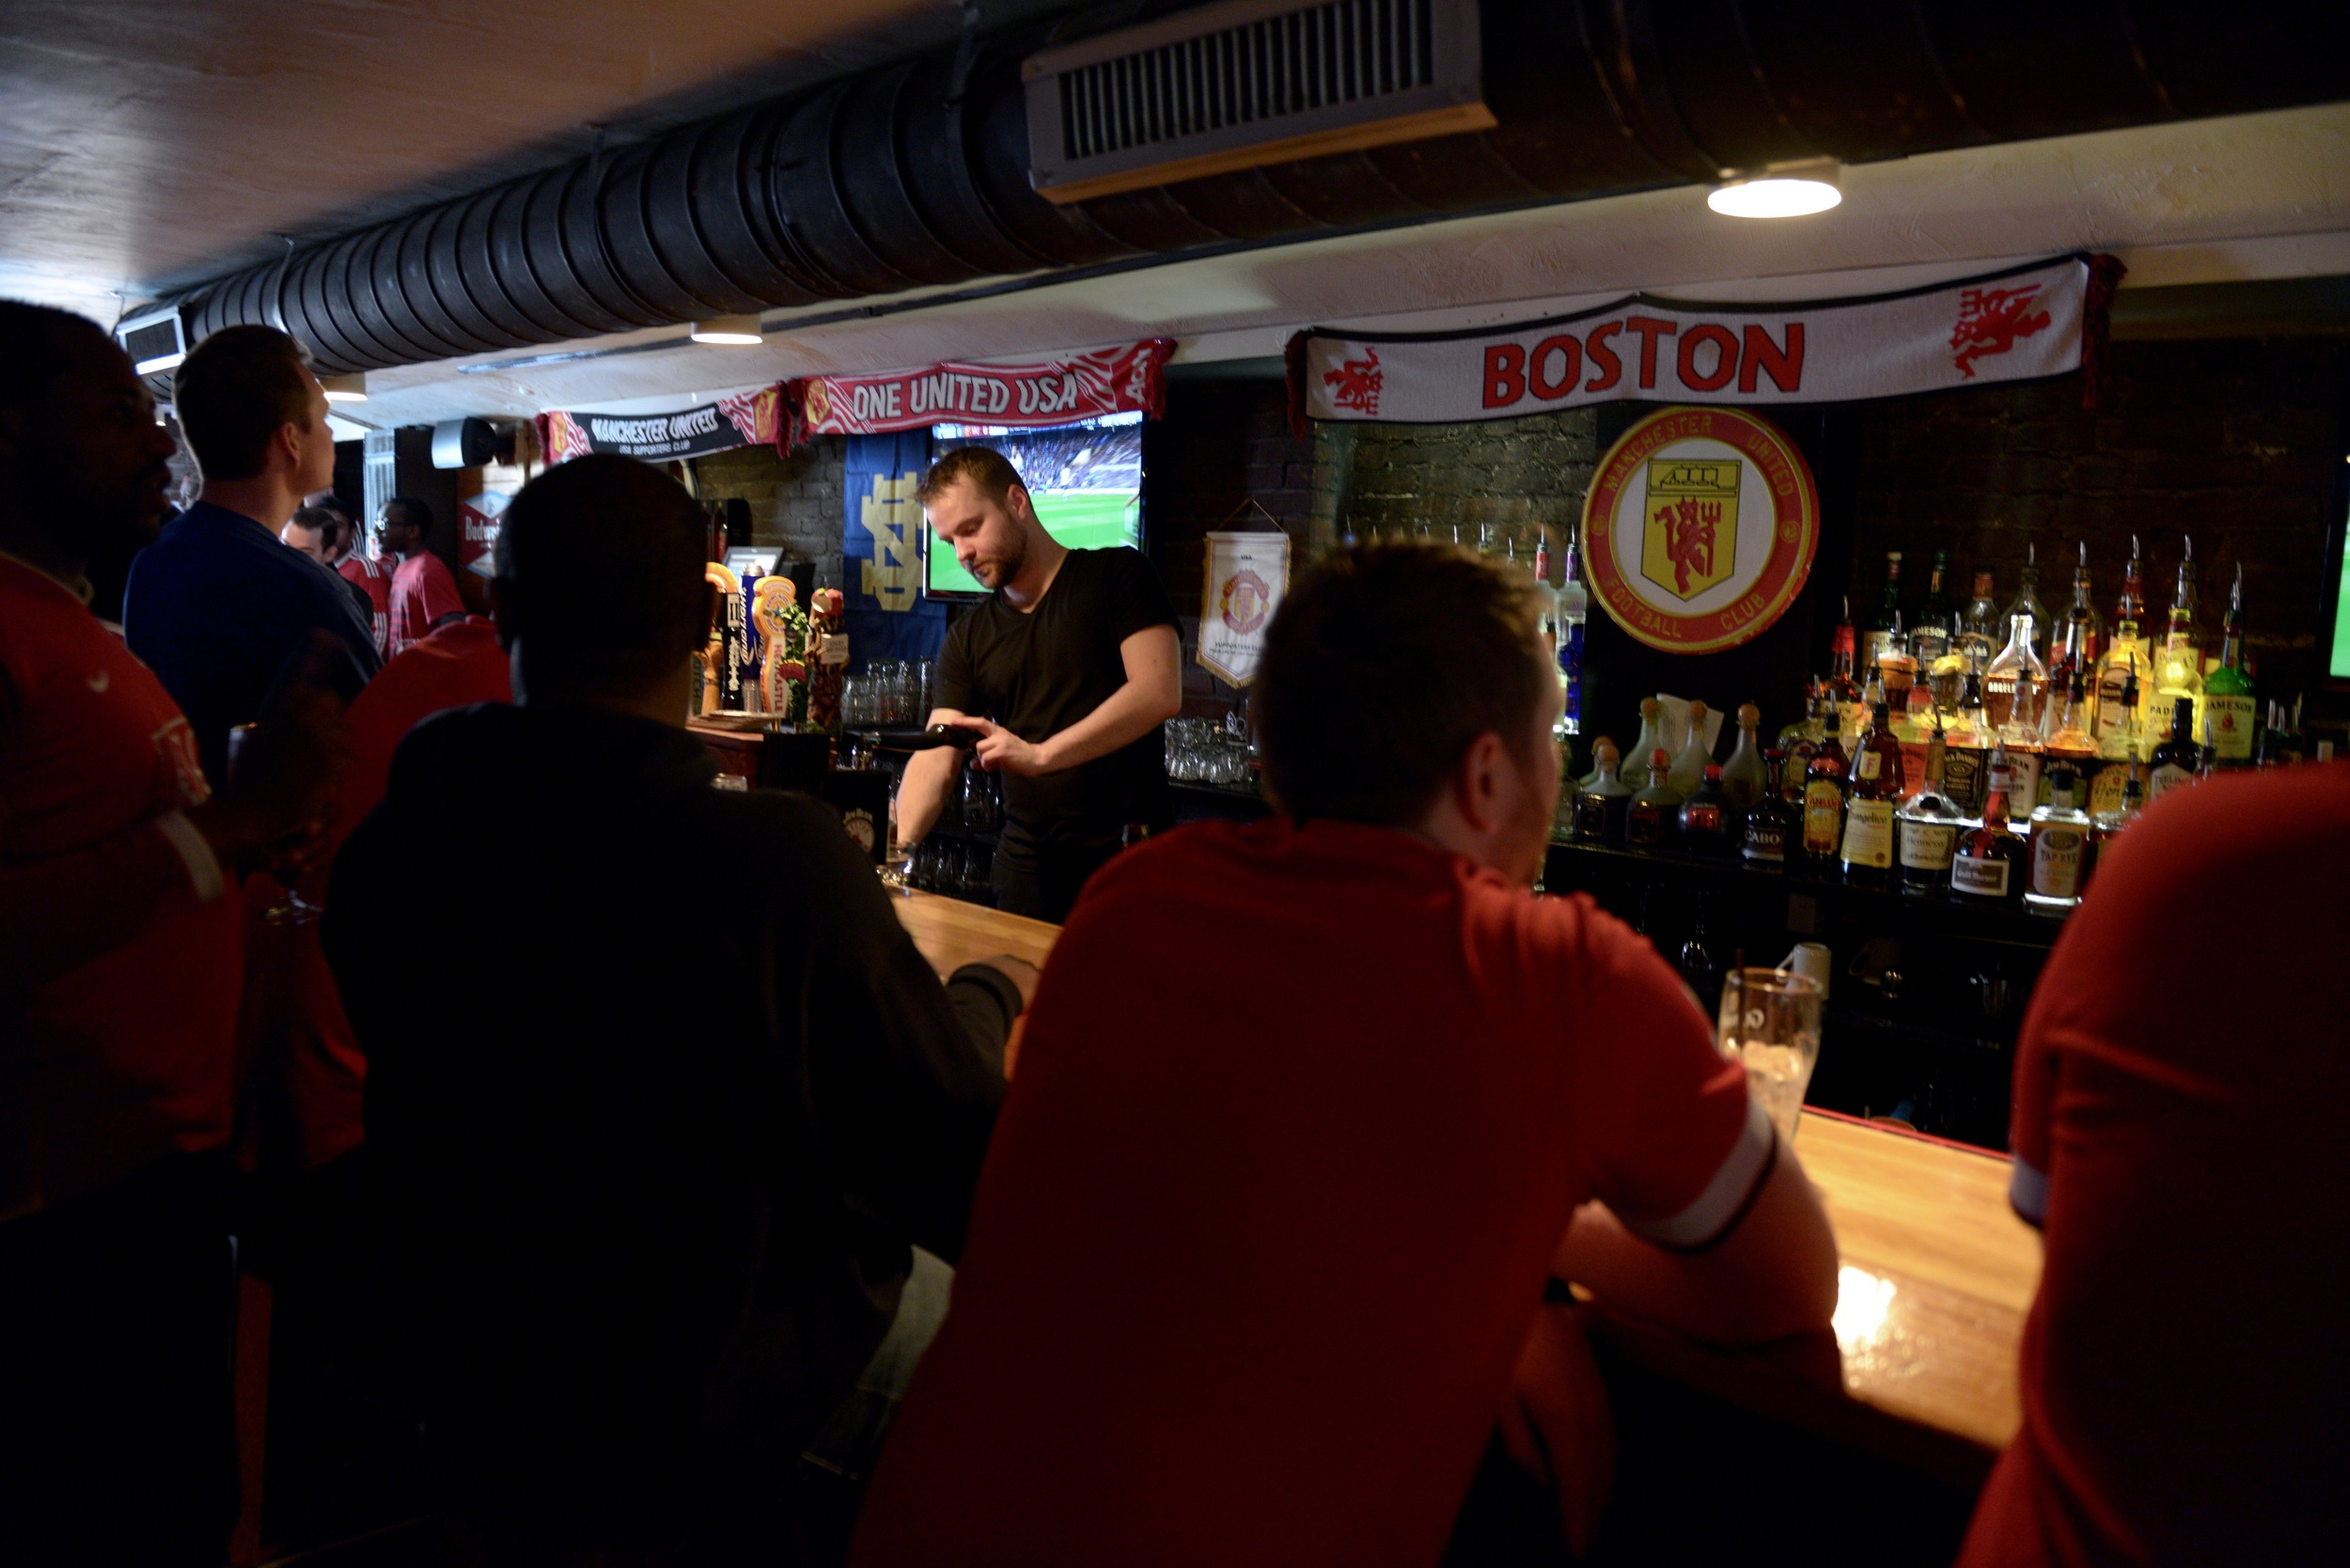 Televisions line both sides of the room. Some sit at the bar, while others gather in pockets around the screens.